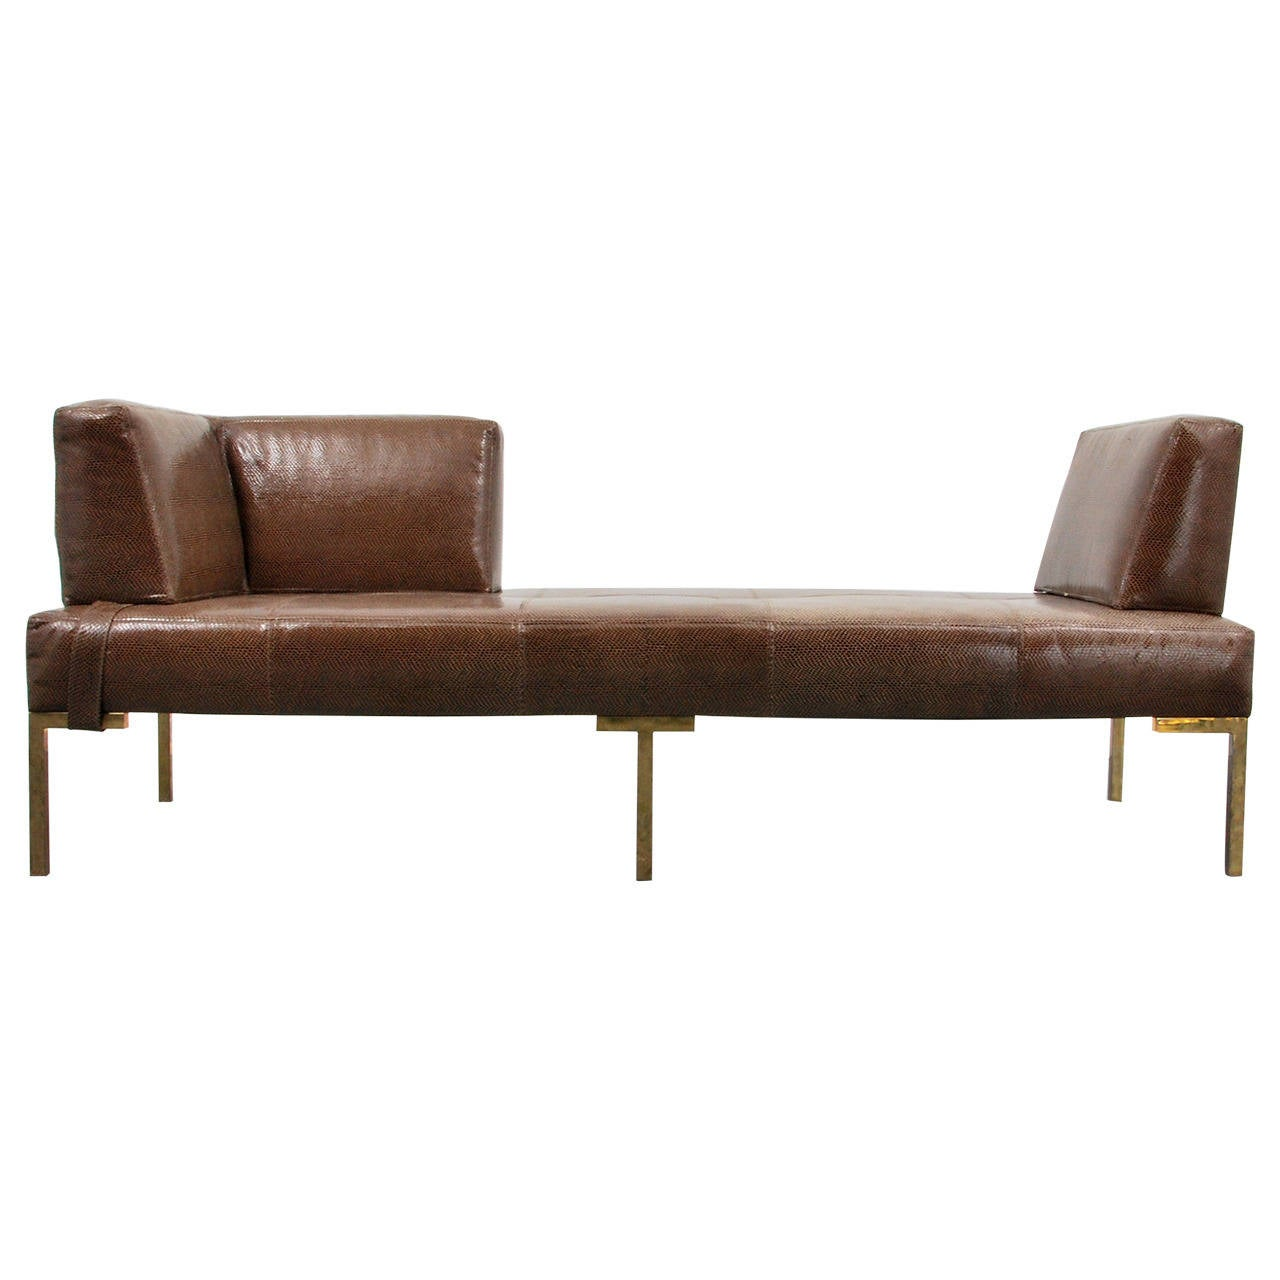 Luigi gentile leather daybeds or chaise lounges two for Chaise longue lounge